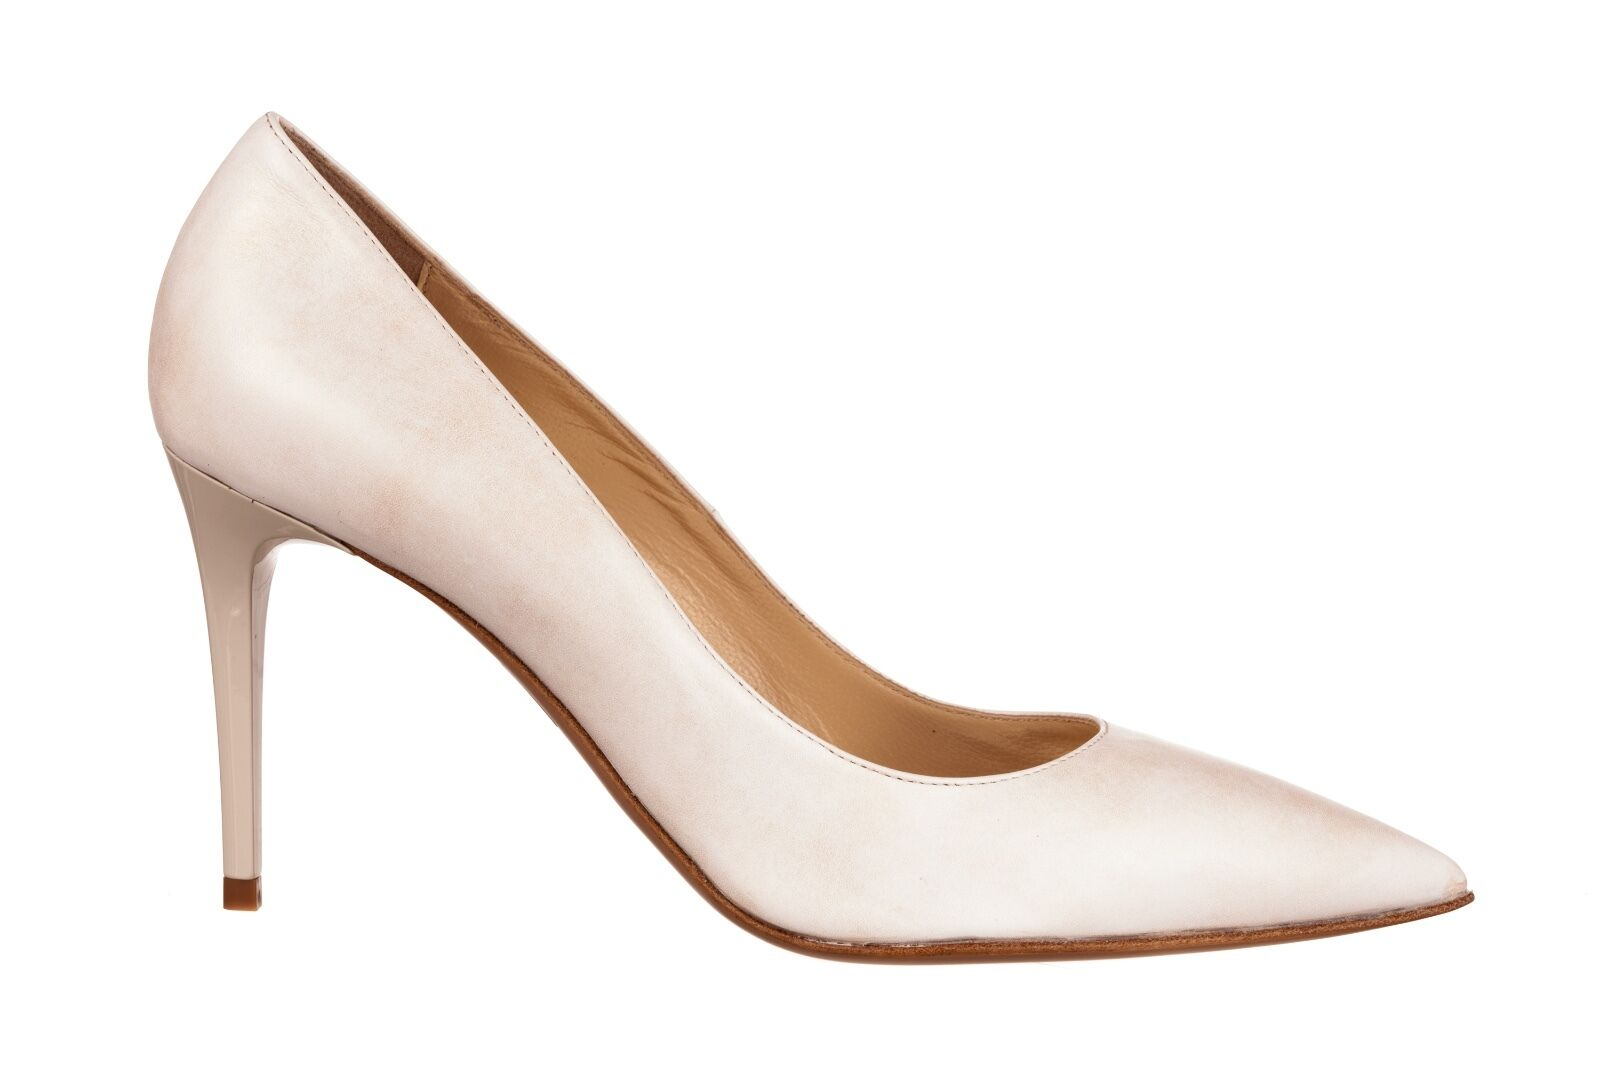 Mori Made in  Pointy High Heels Pumps Decolte Schuhe Leather Beige Nude 44